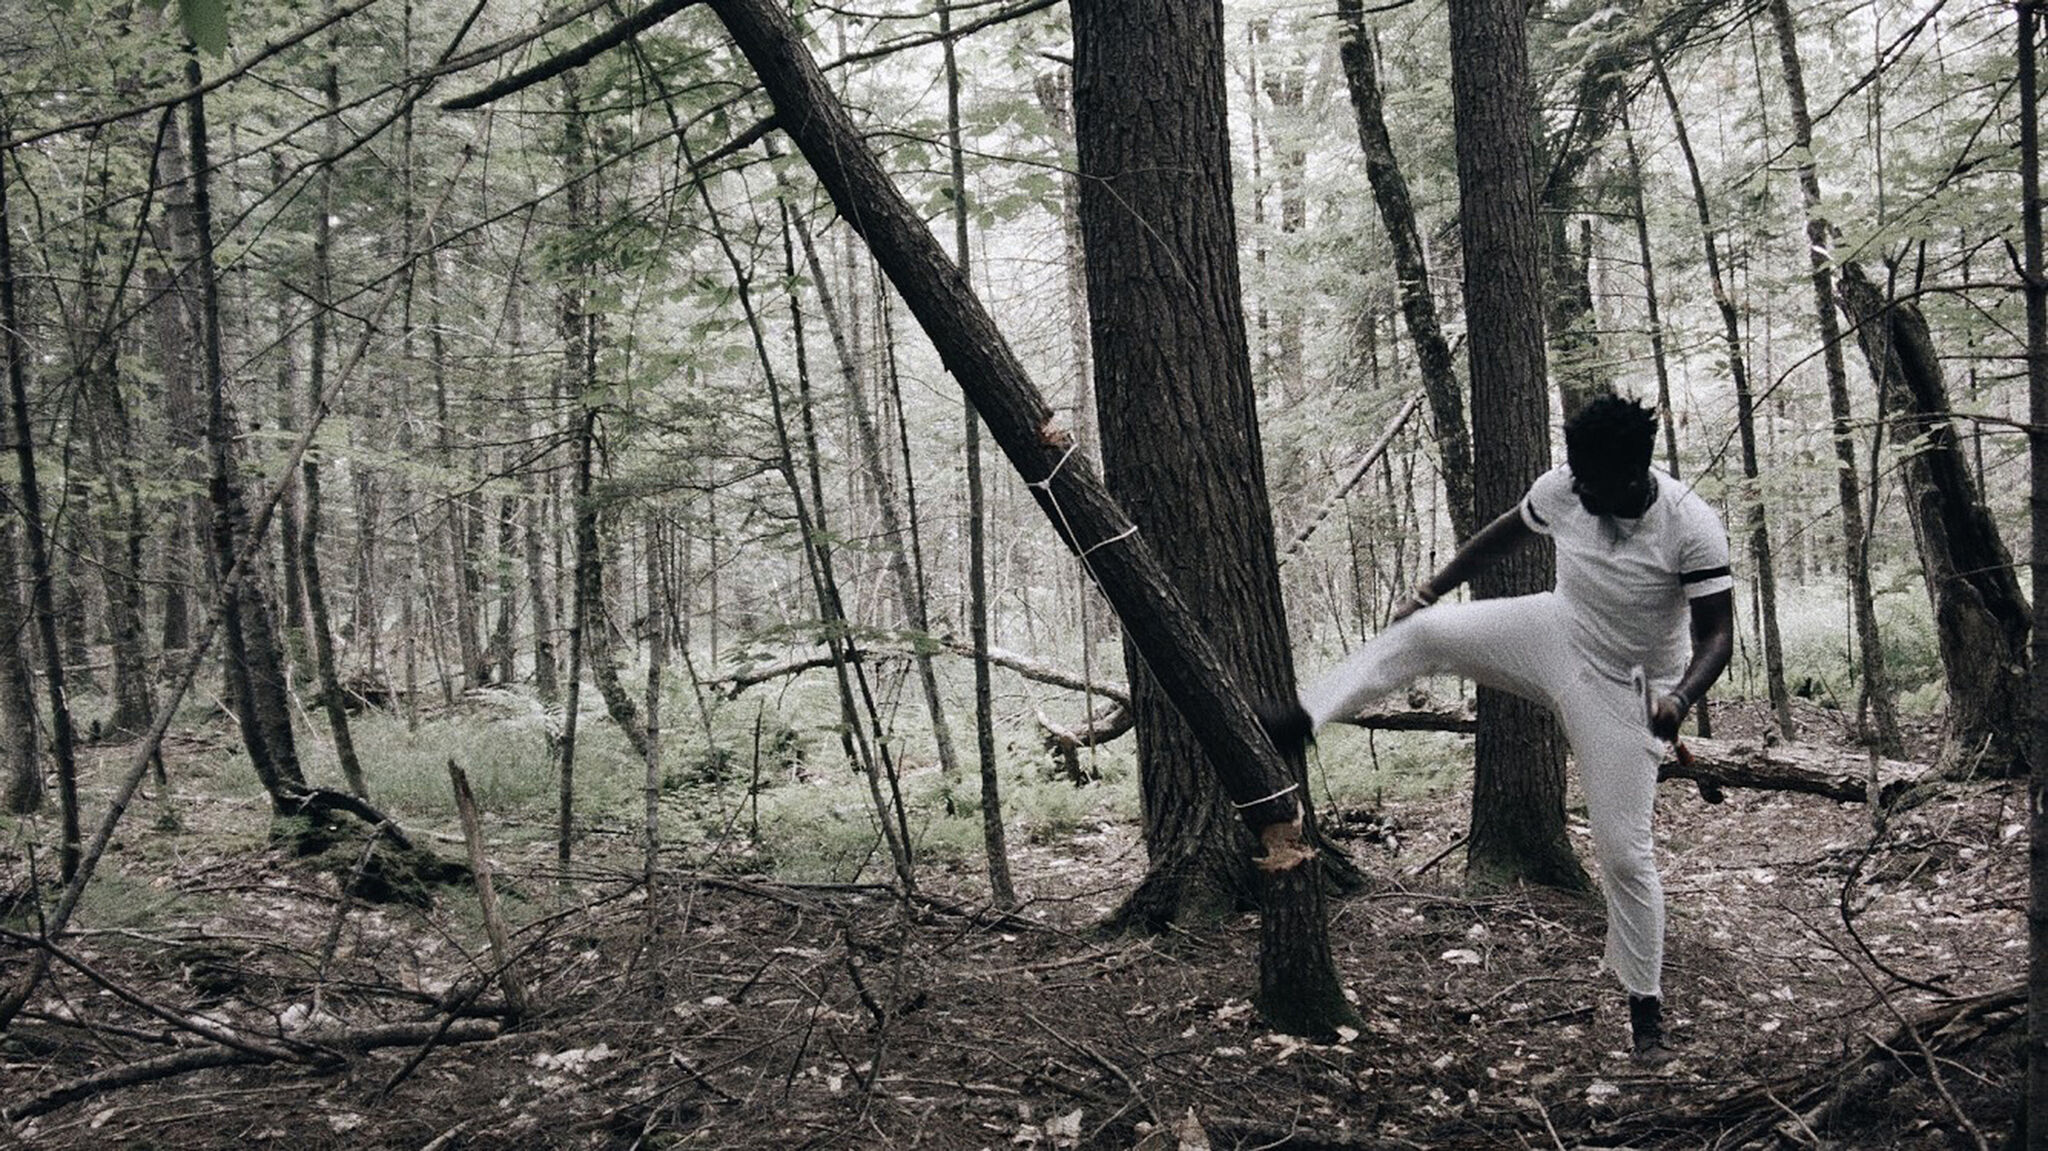 A video still of a person dressed in white in a forest kicking down a tree.